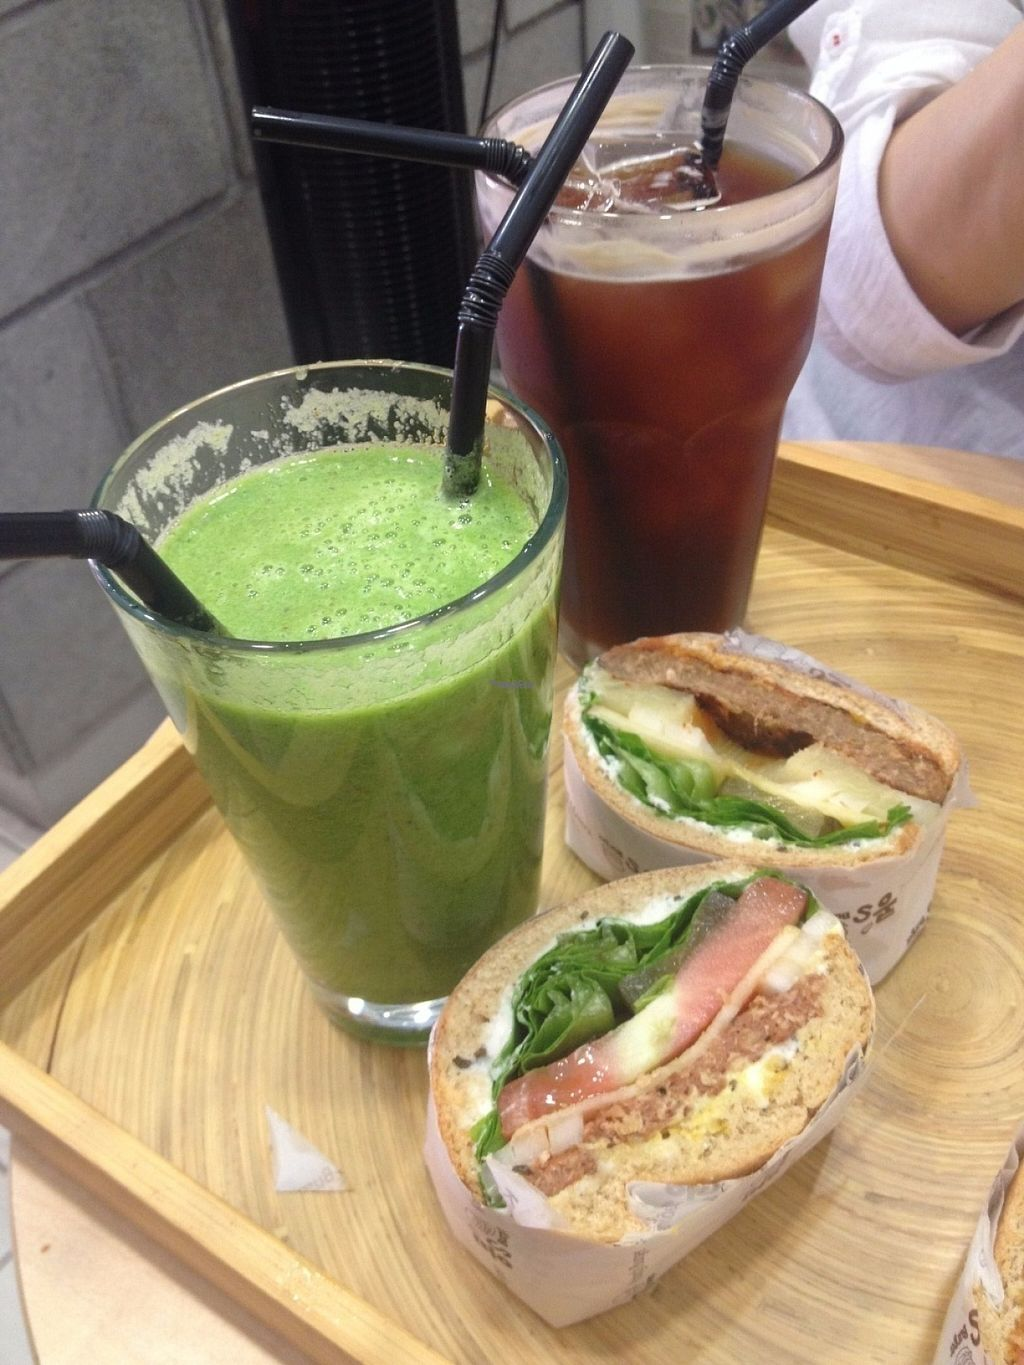 """Photo of CLOSED: Kong's Burger - Jungangdong  by <a href=""""/members/profile/Emomeow"""">Emomeow</a> <br/>Kale green smoothie, Iced Americano, Kong's steak burger, Kong's double burger <br/> August 1, 2016  - <a href='/contact/abuse/image/77724/164180'>Report</a>"""